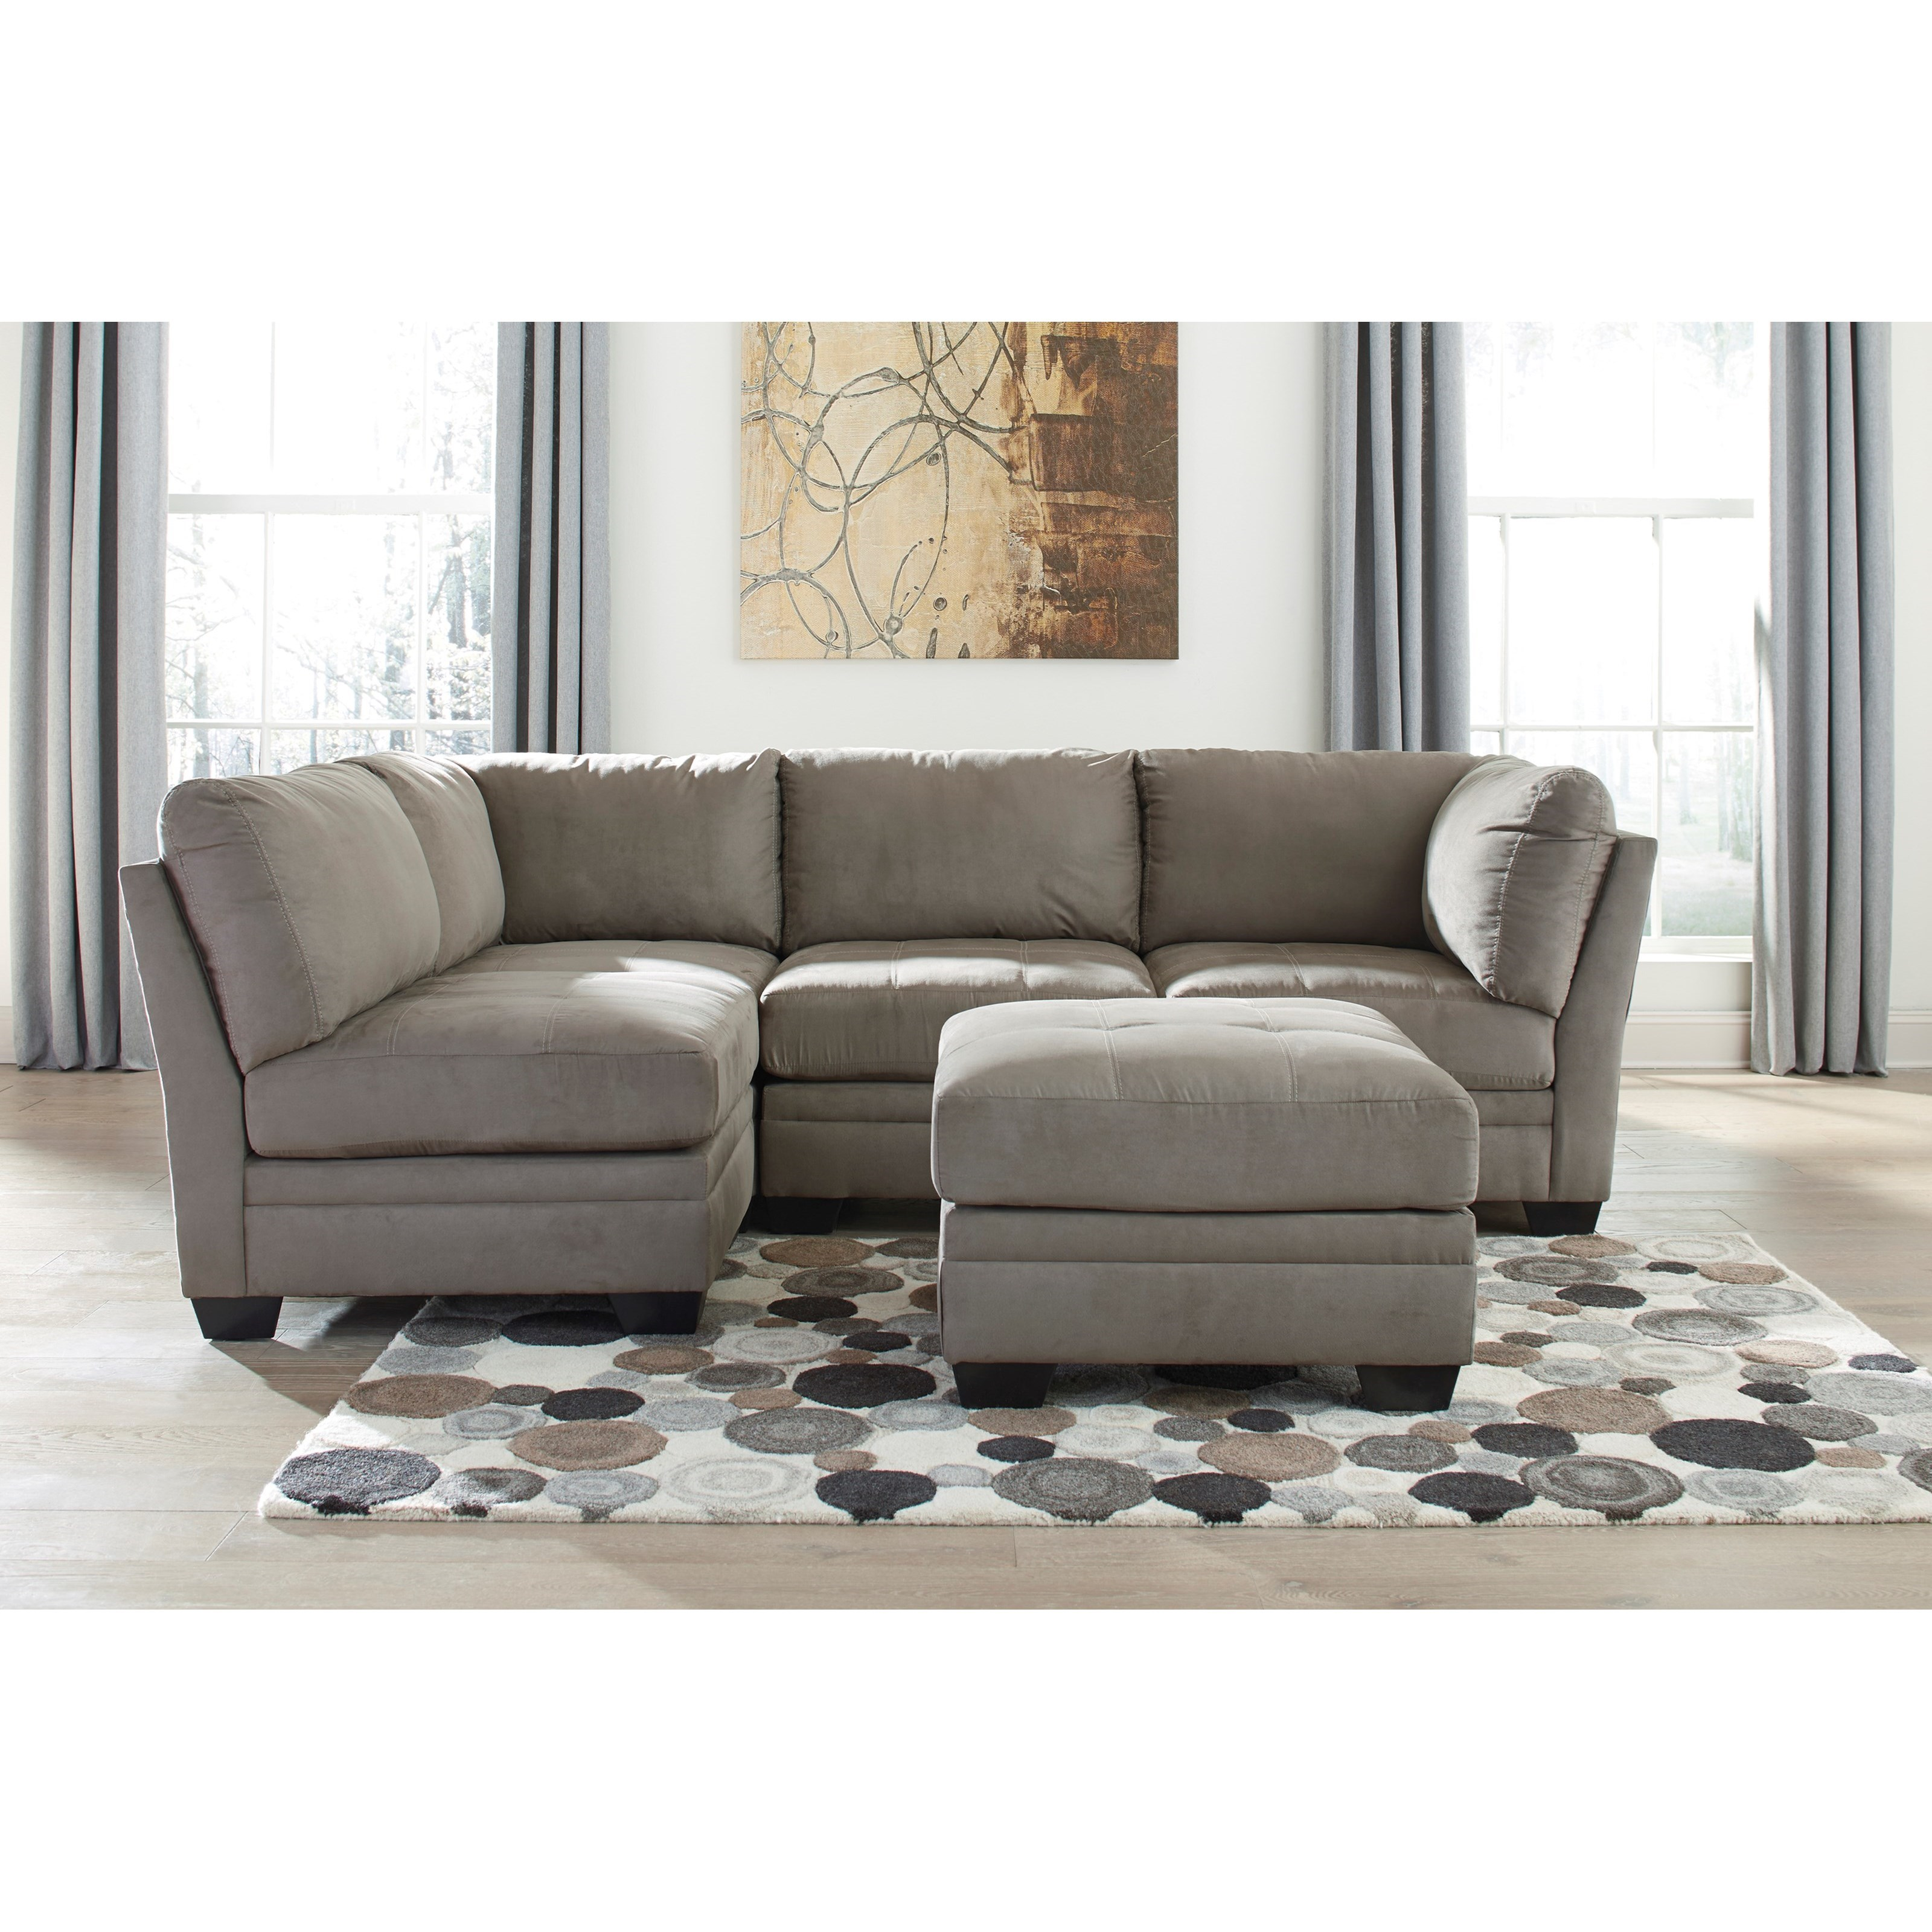 Signature Design by Ashley Iago Stationary Living Room Group - Item Number: 65103 Living Room Group 1